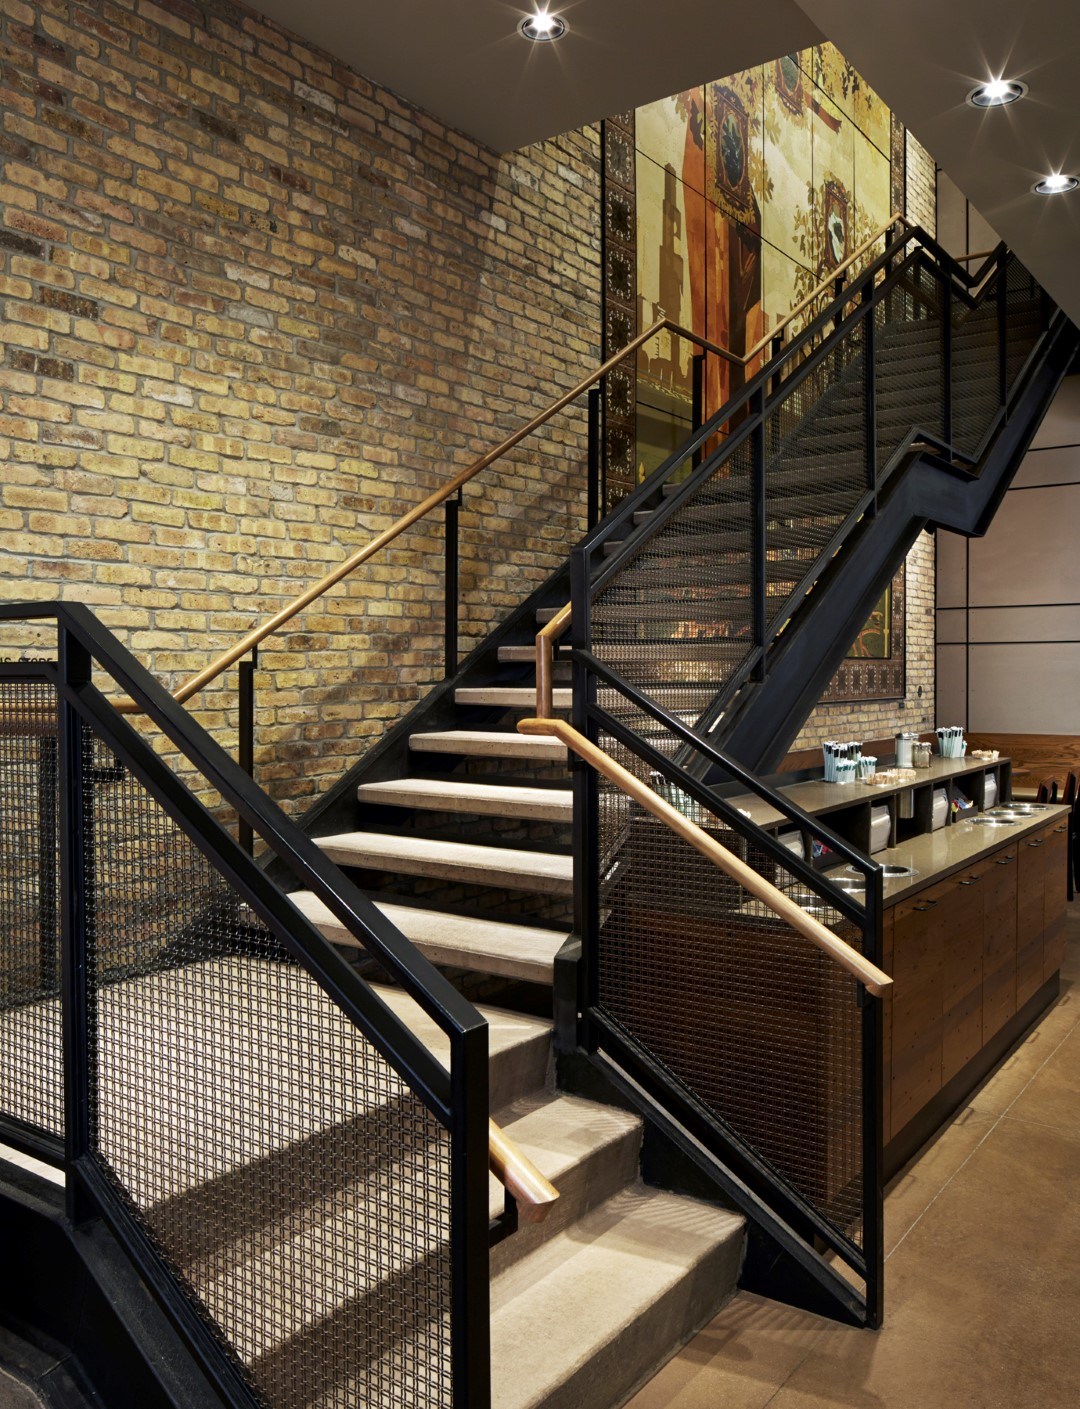 Woven wire mesh is both chic and not intimidating, for the perfect retail look.